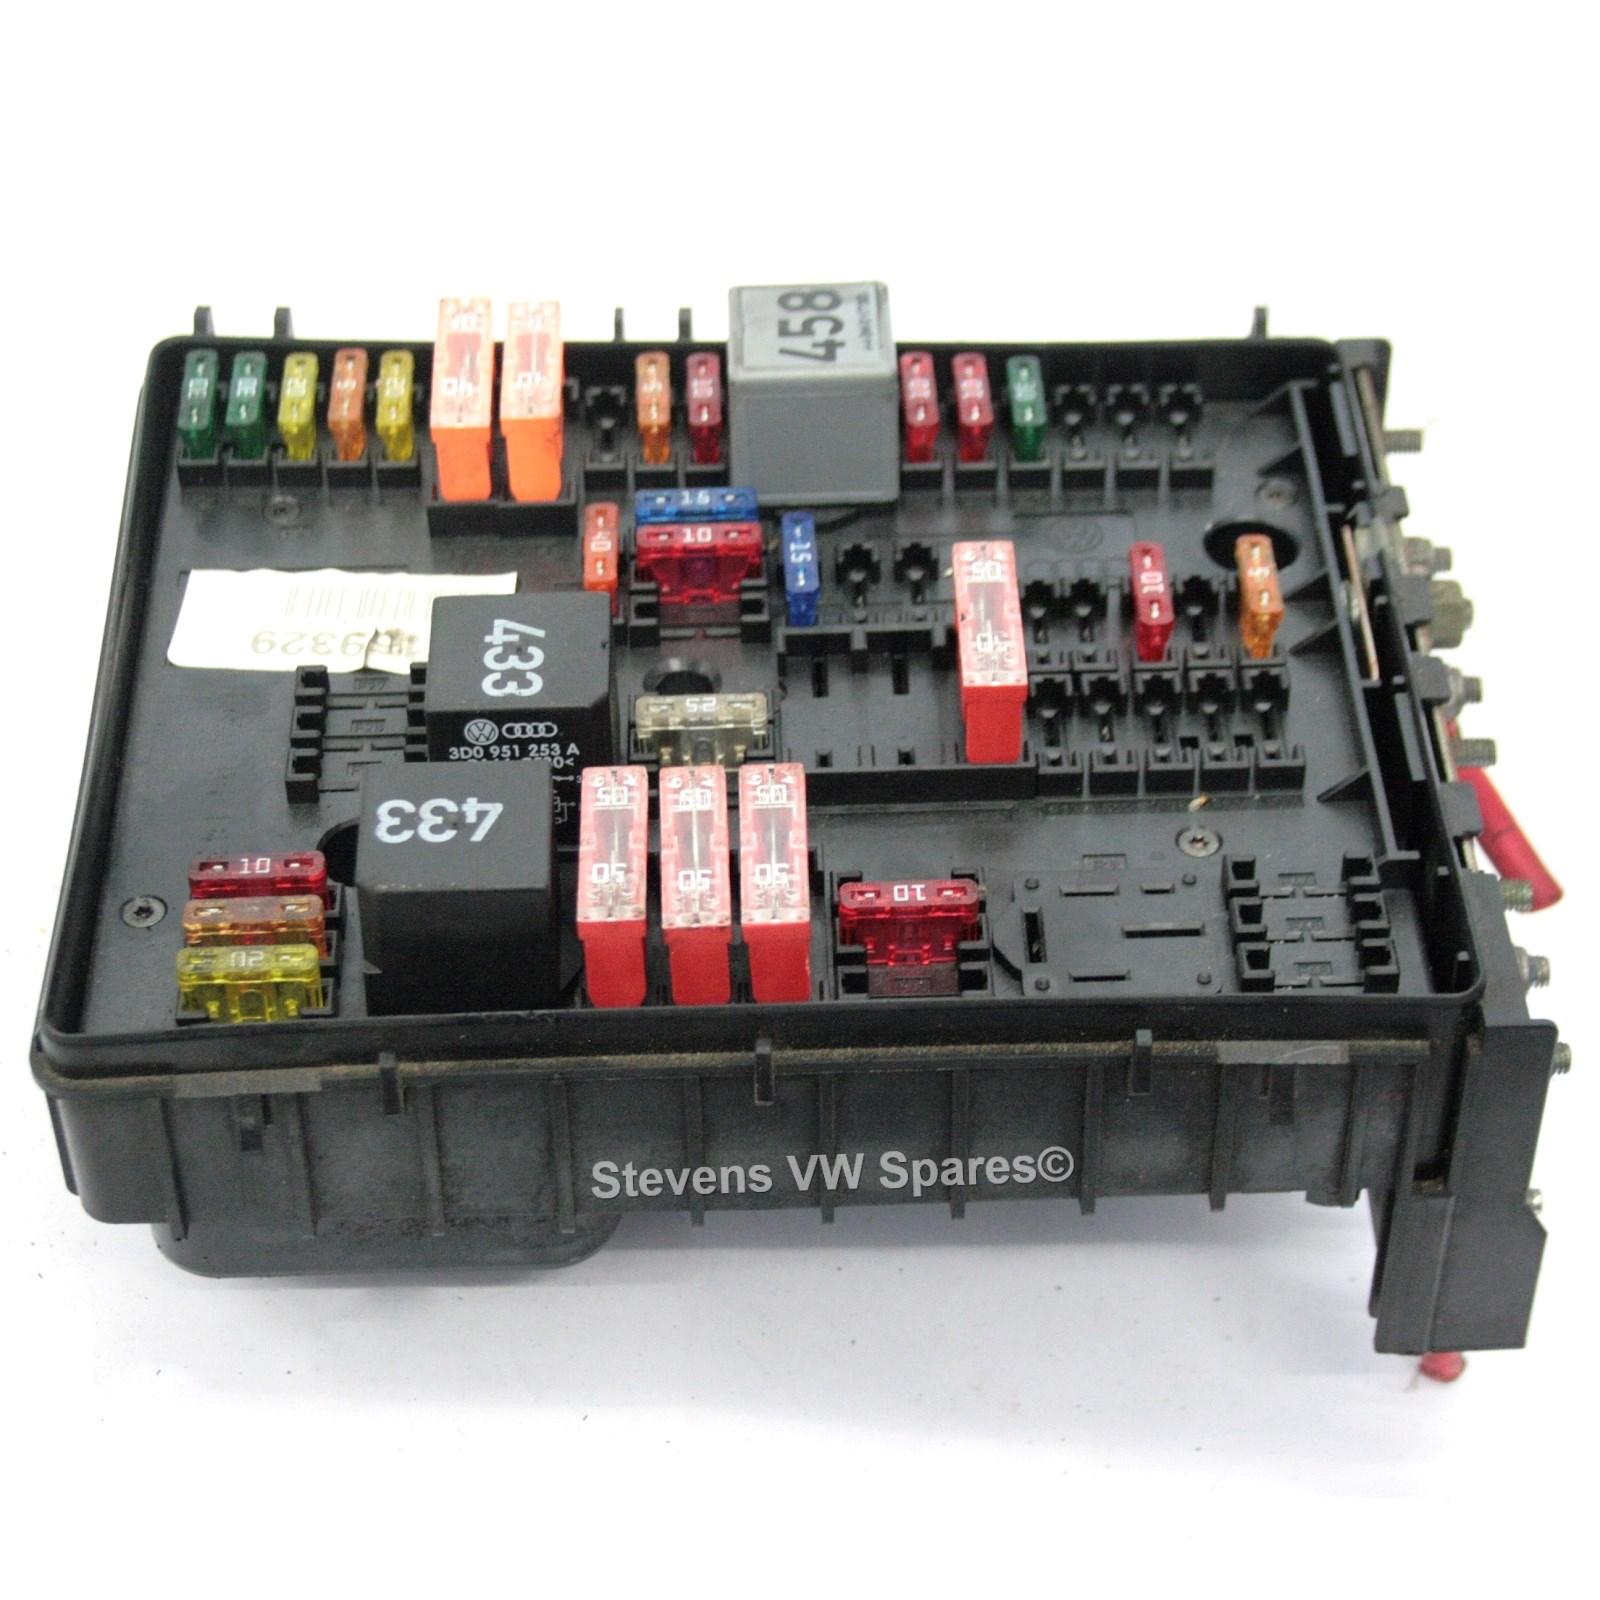 Bay Fuse Box Manual E Books 99 Vw Jetta Diagram Used Genuine Golf Engine Terminal 1k0 937 124 Hvw